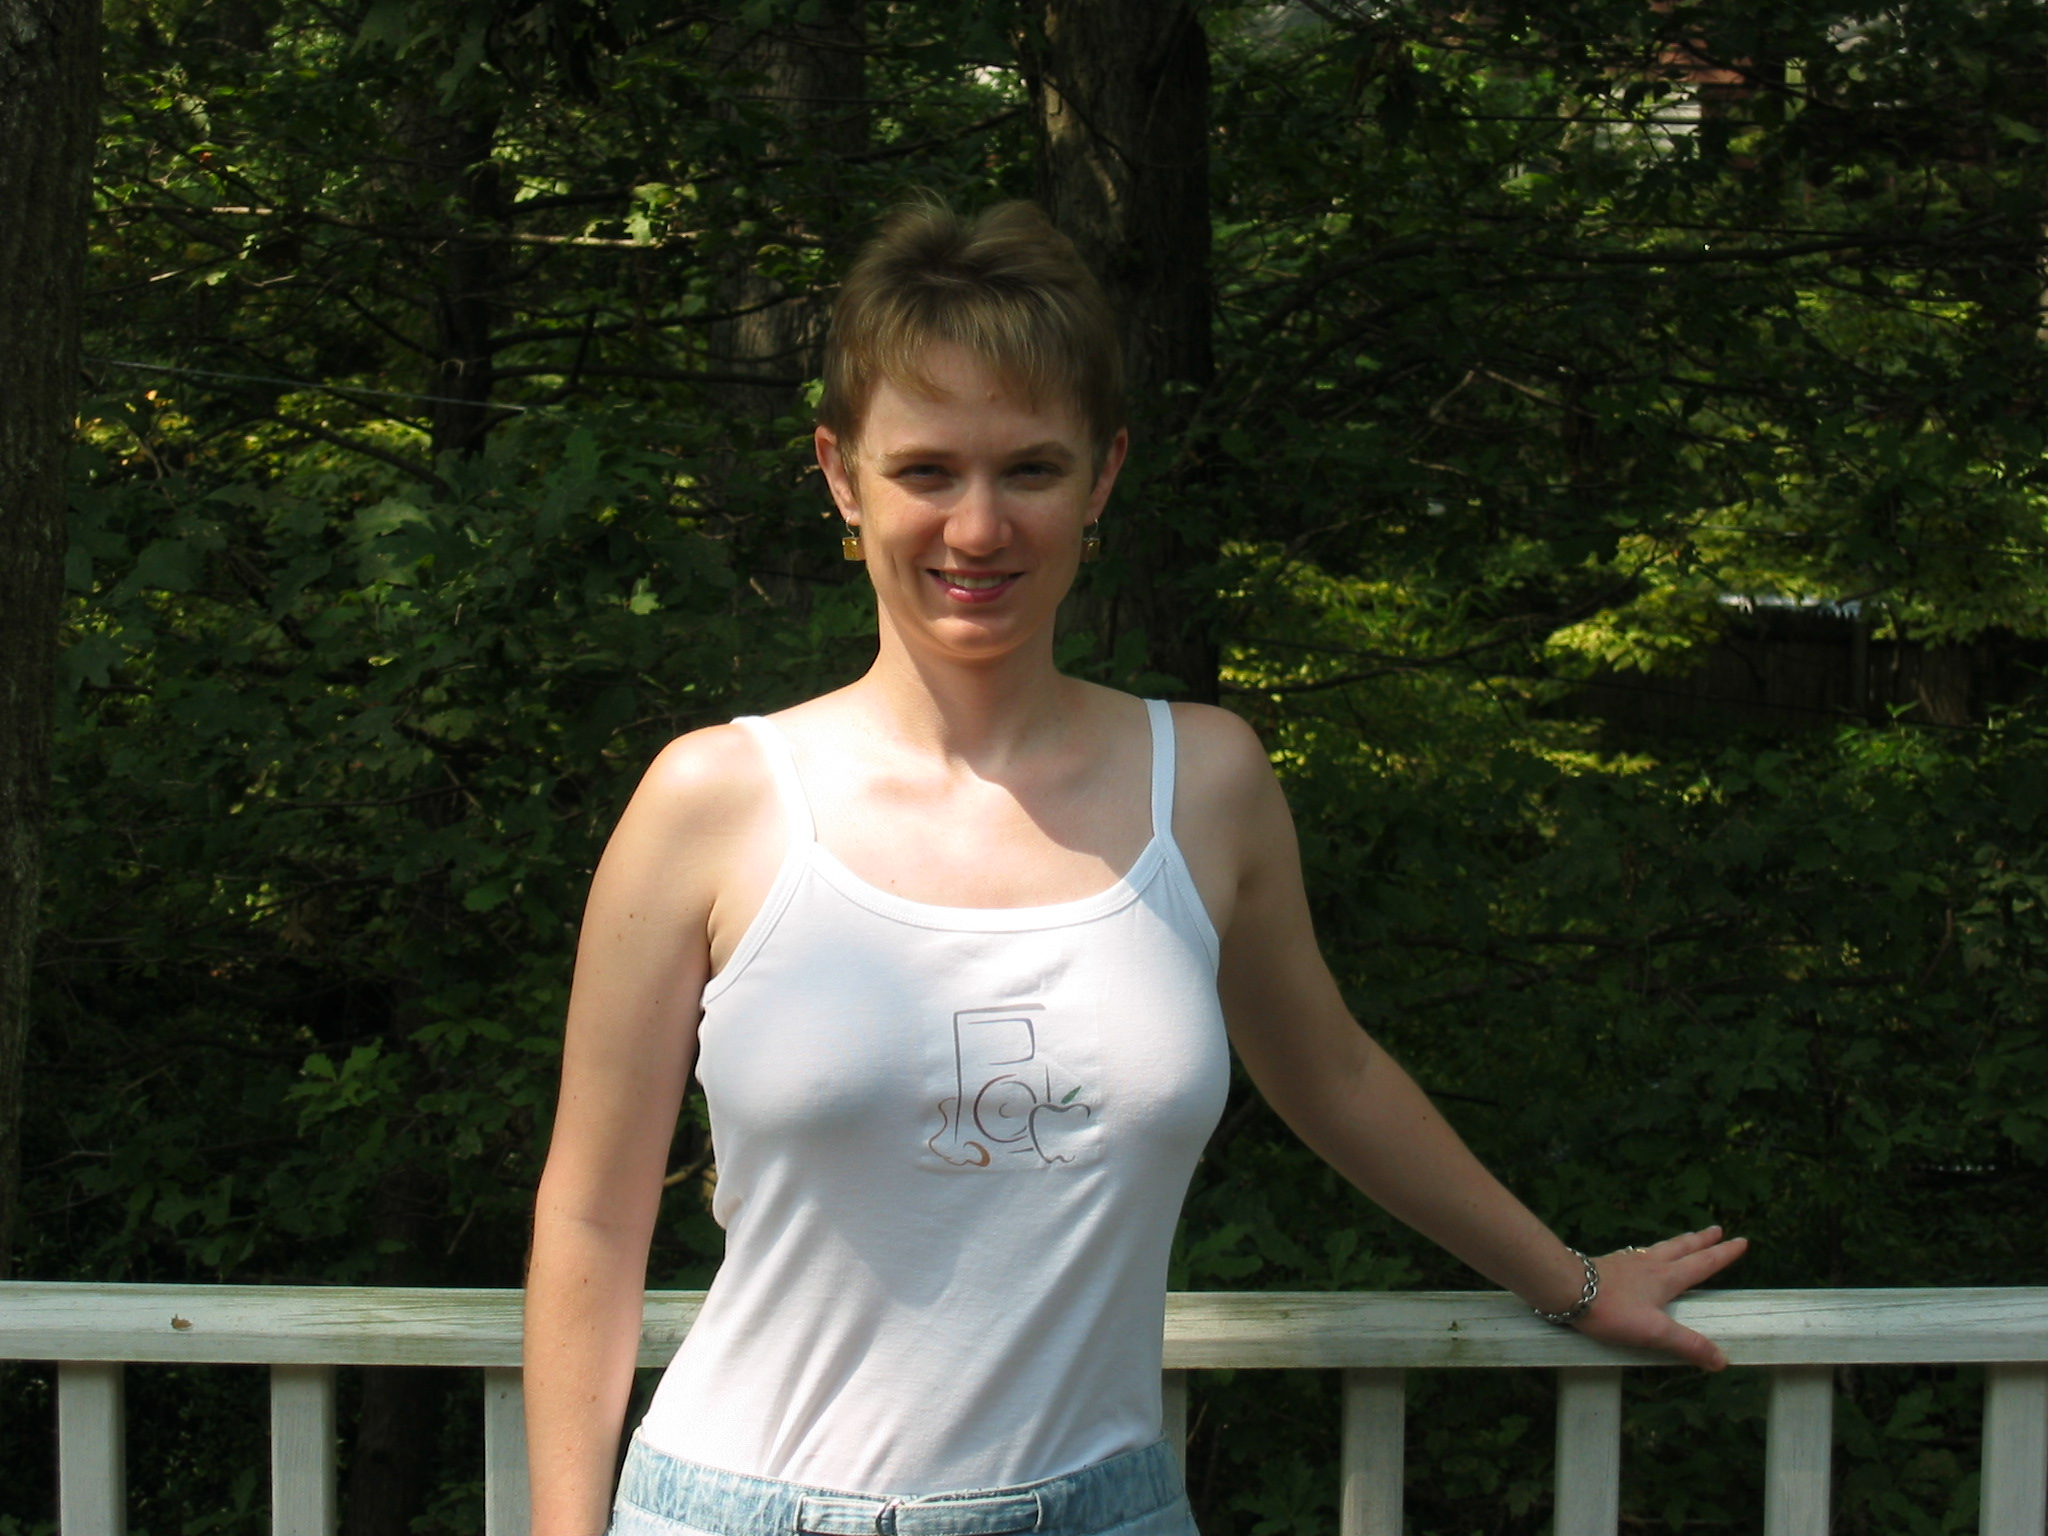 ipoh mature women personals Ipoh's best 100% free mature women dating site meet thousands of single mature women in ipoh with mingle2's free personal ads and chat rooms our network of mature women in ipoh is the.